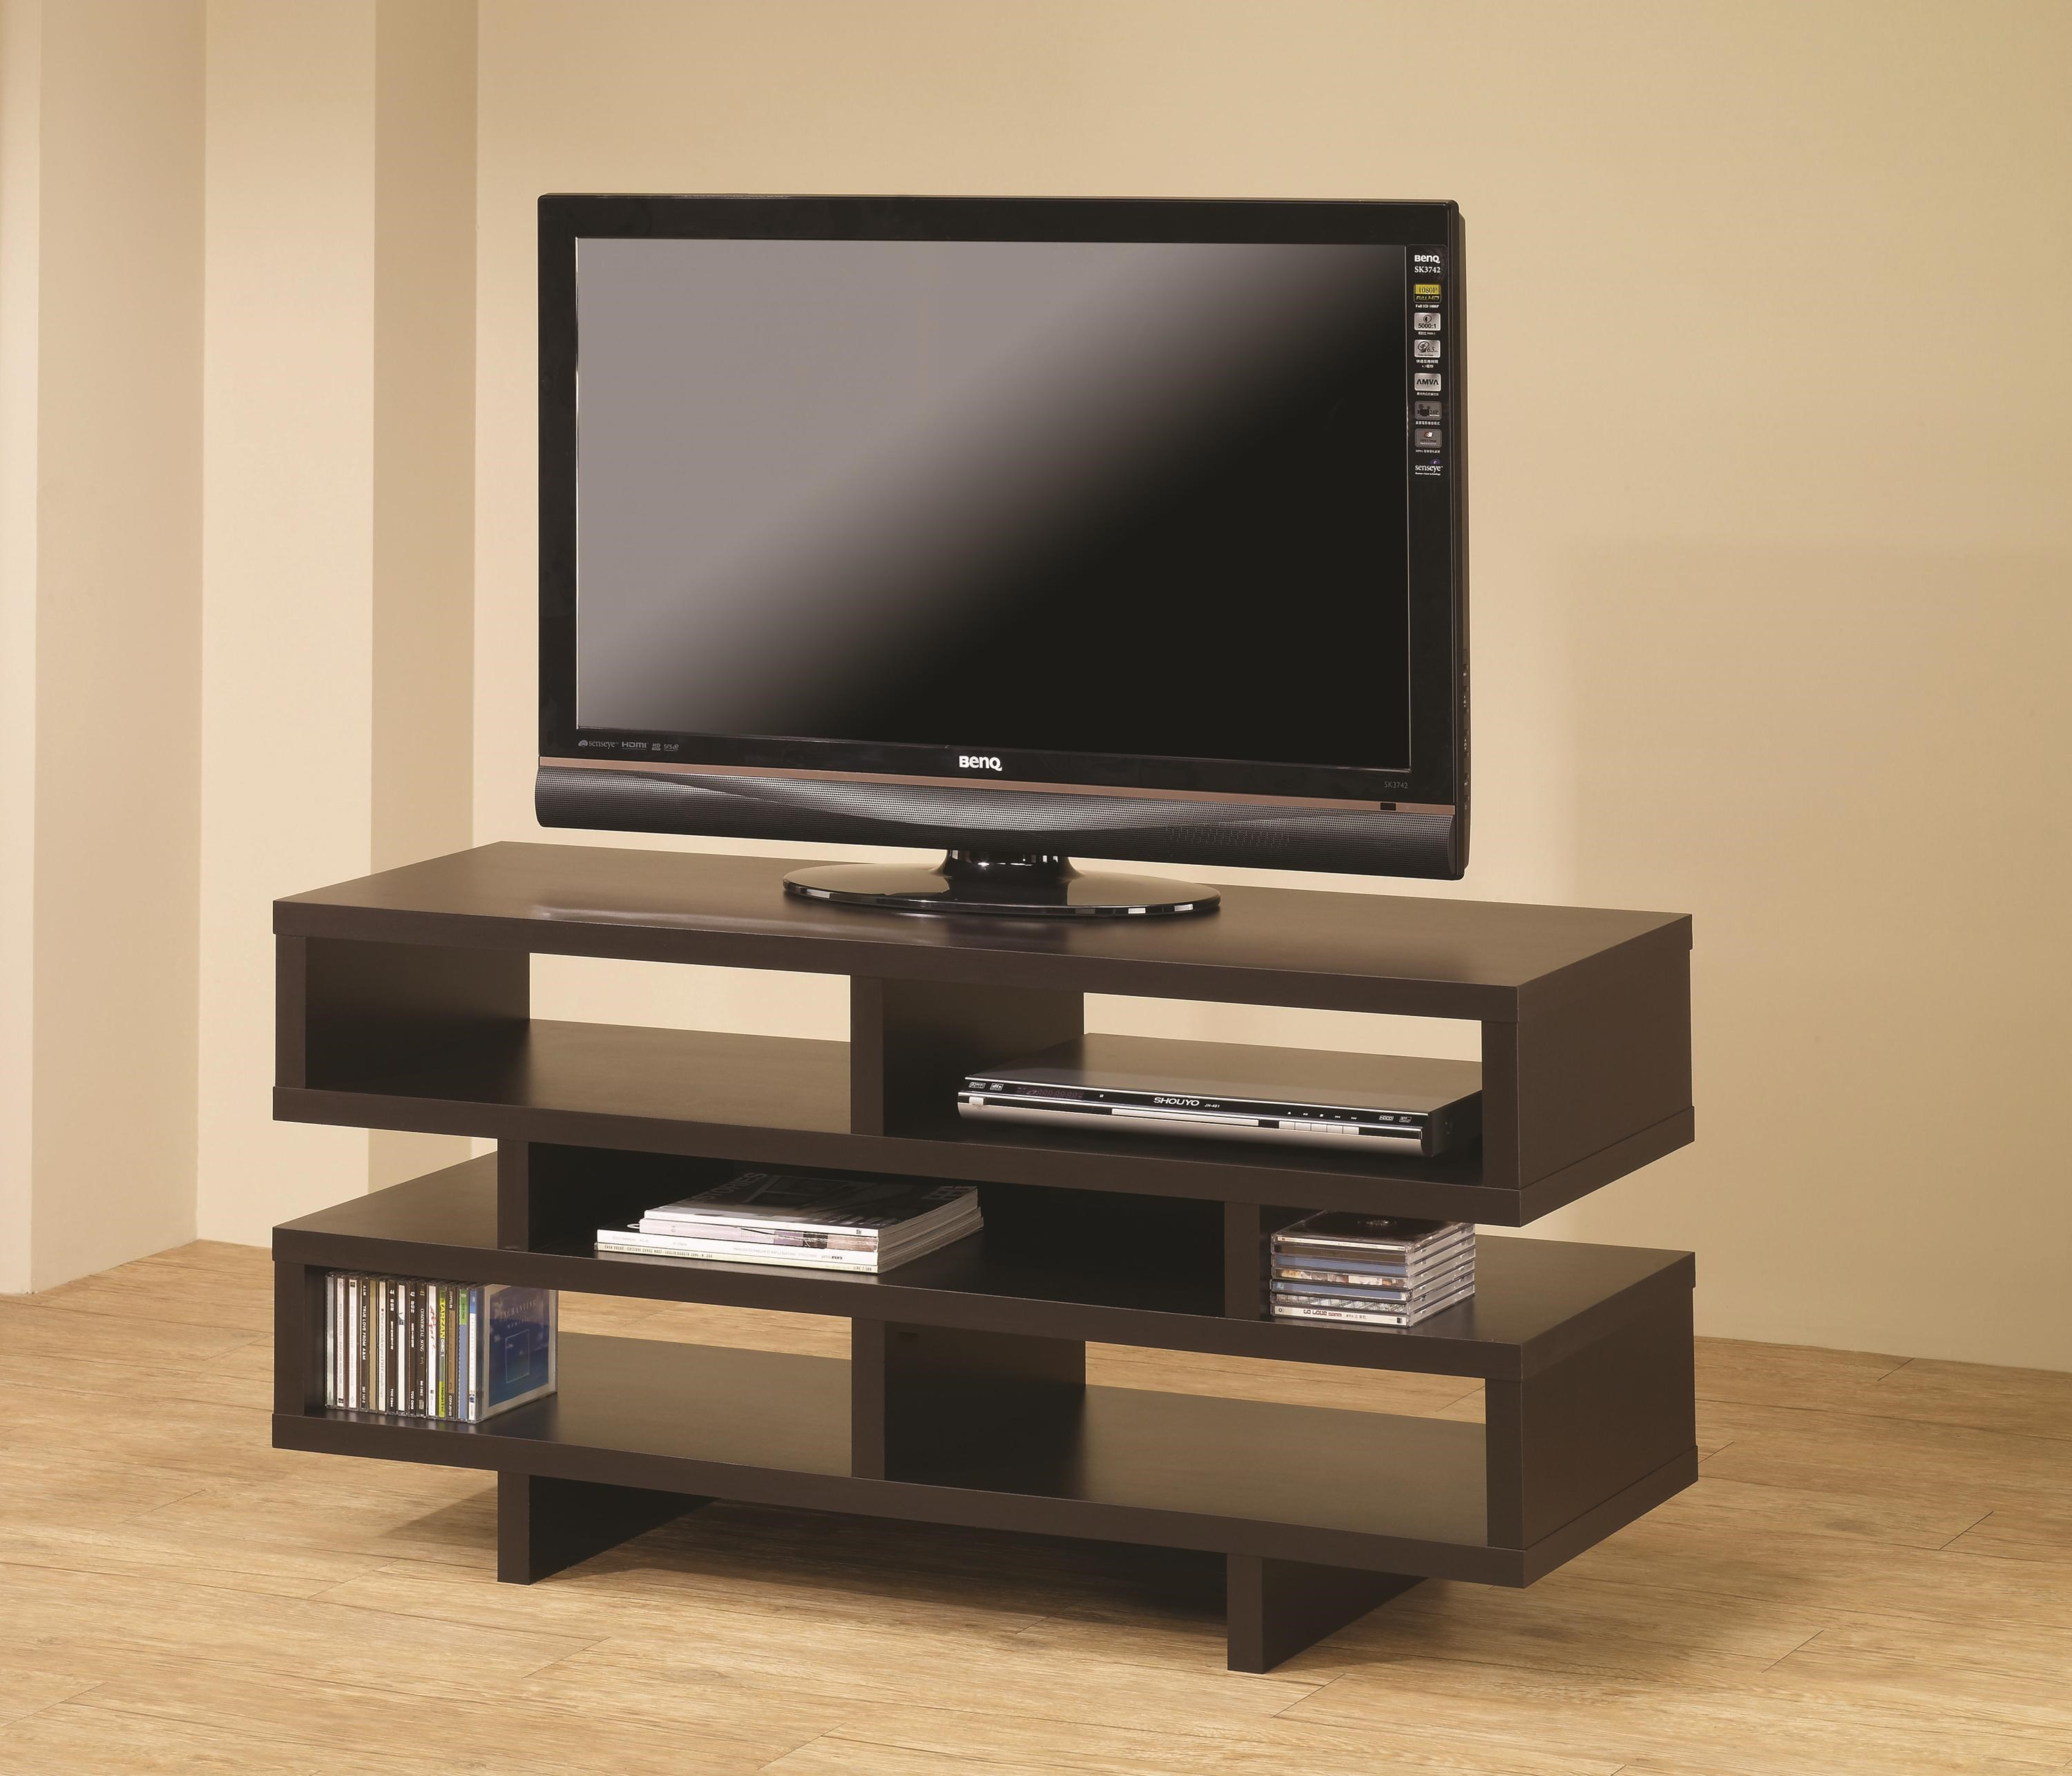 Good Coaster TV Stands Contemporary TV Console With Open Storage U0026 Cappuccino  Finish   Coaster Fine Furniture